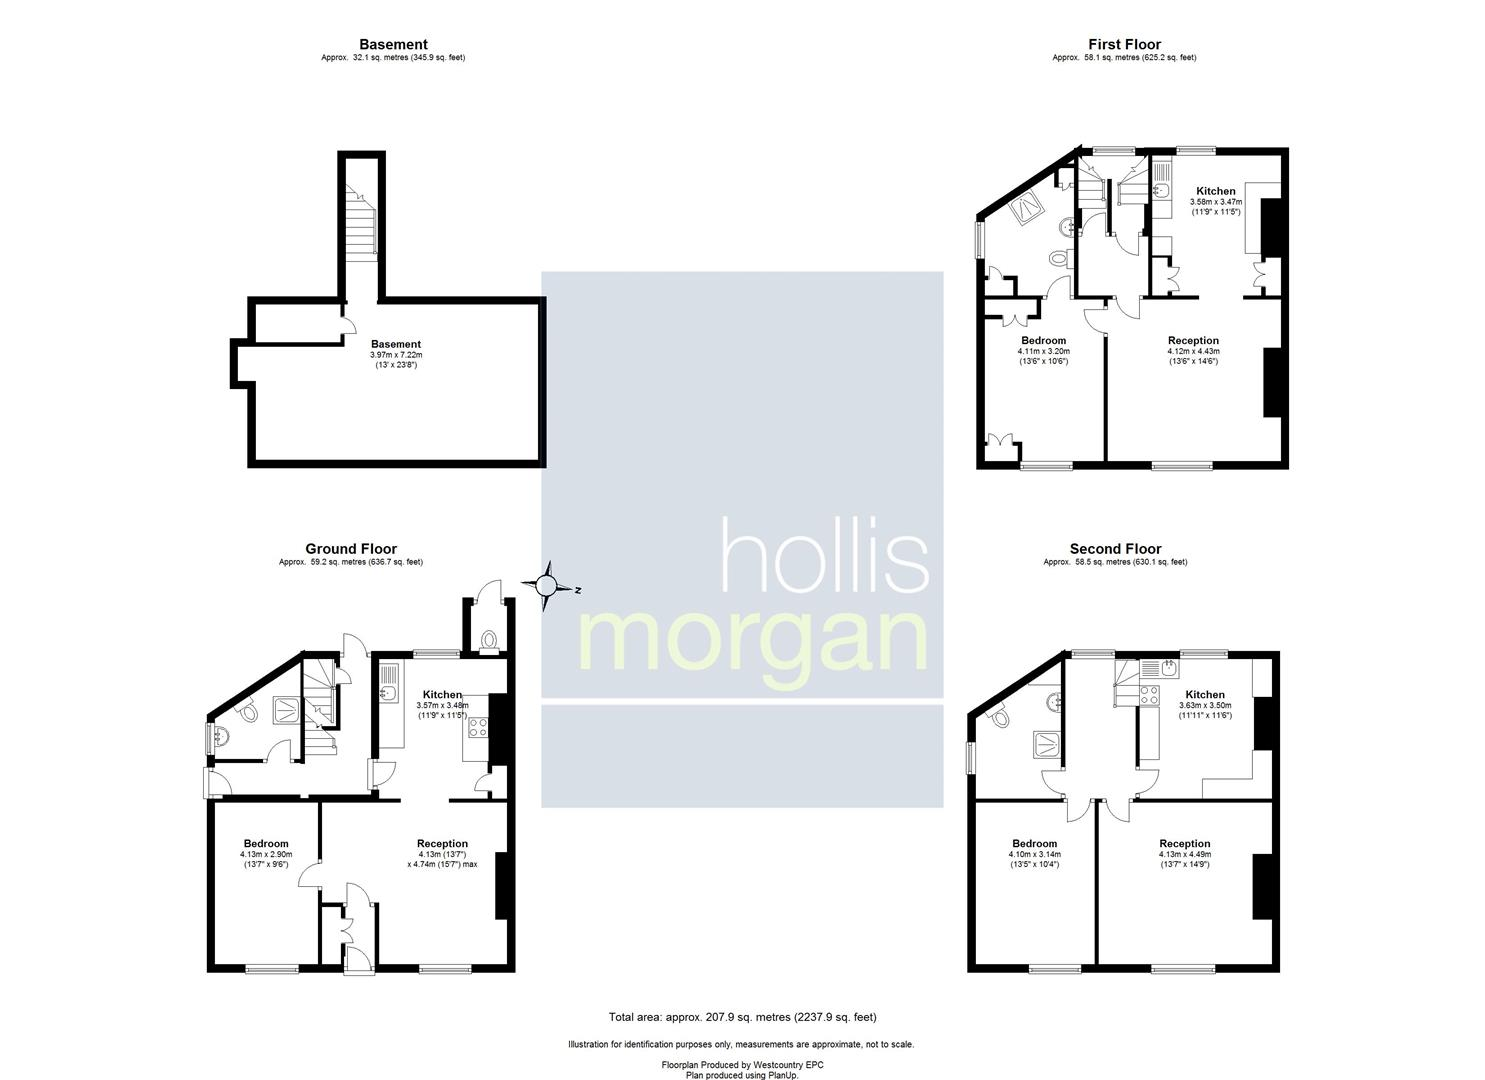 Floorplans For 59 Jacobs Wells Road, Hotwells